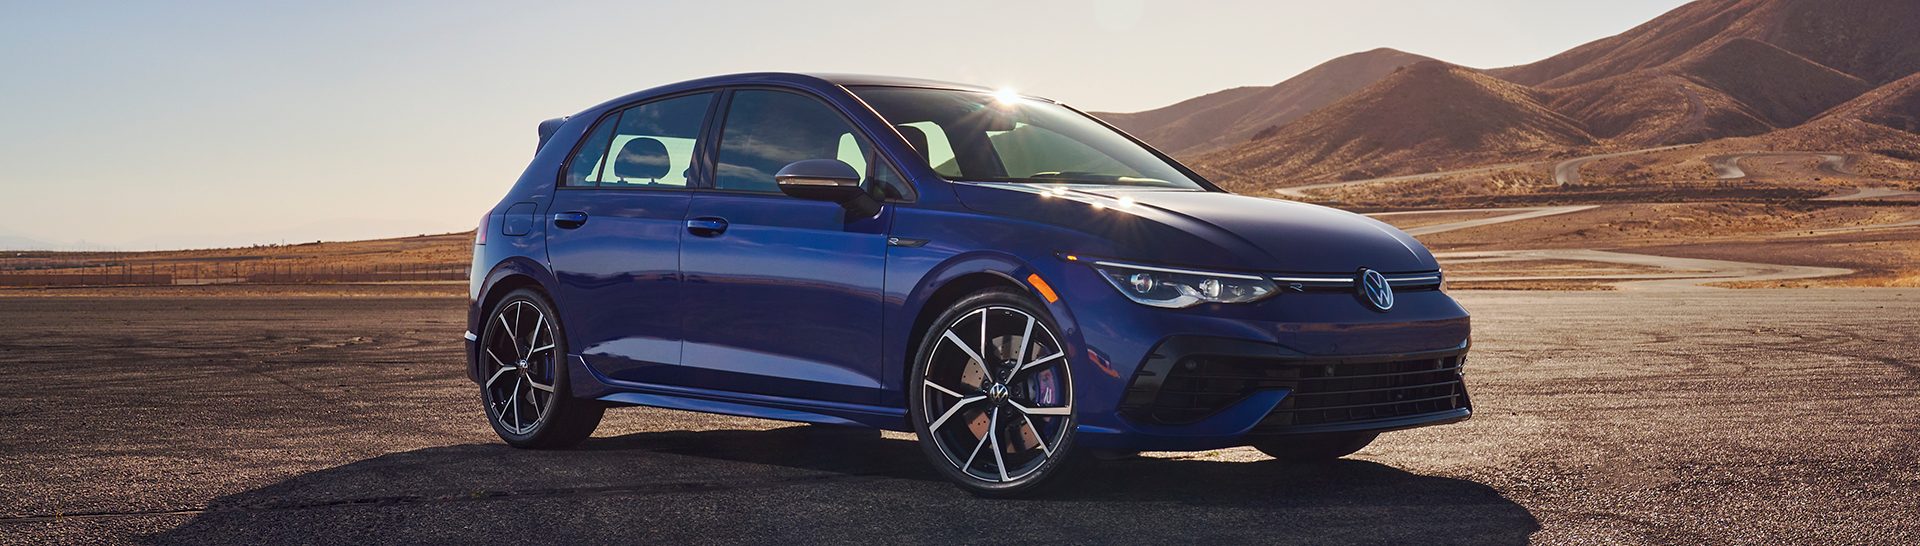 2022 Volkswagen R in the color Lapiz Blue Metallic parked on a lot with hills in the background.